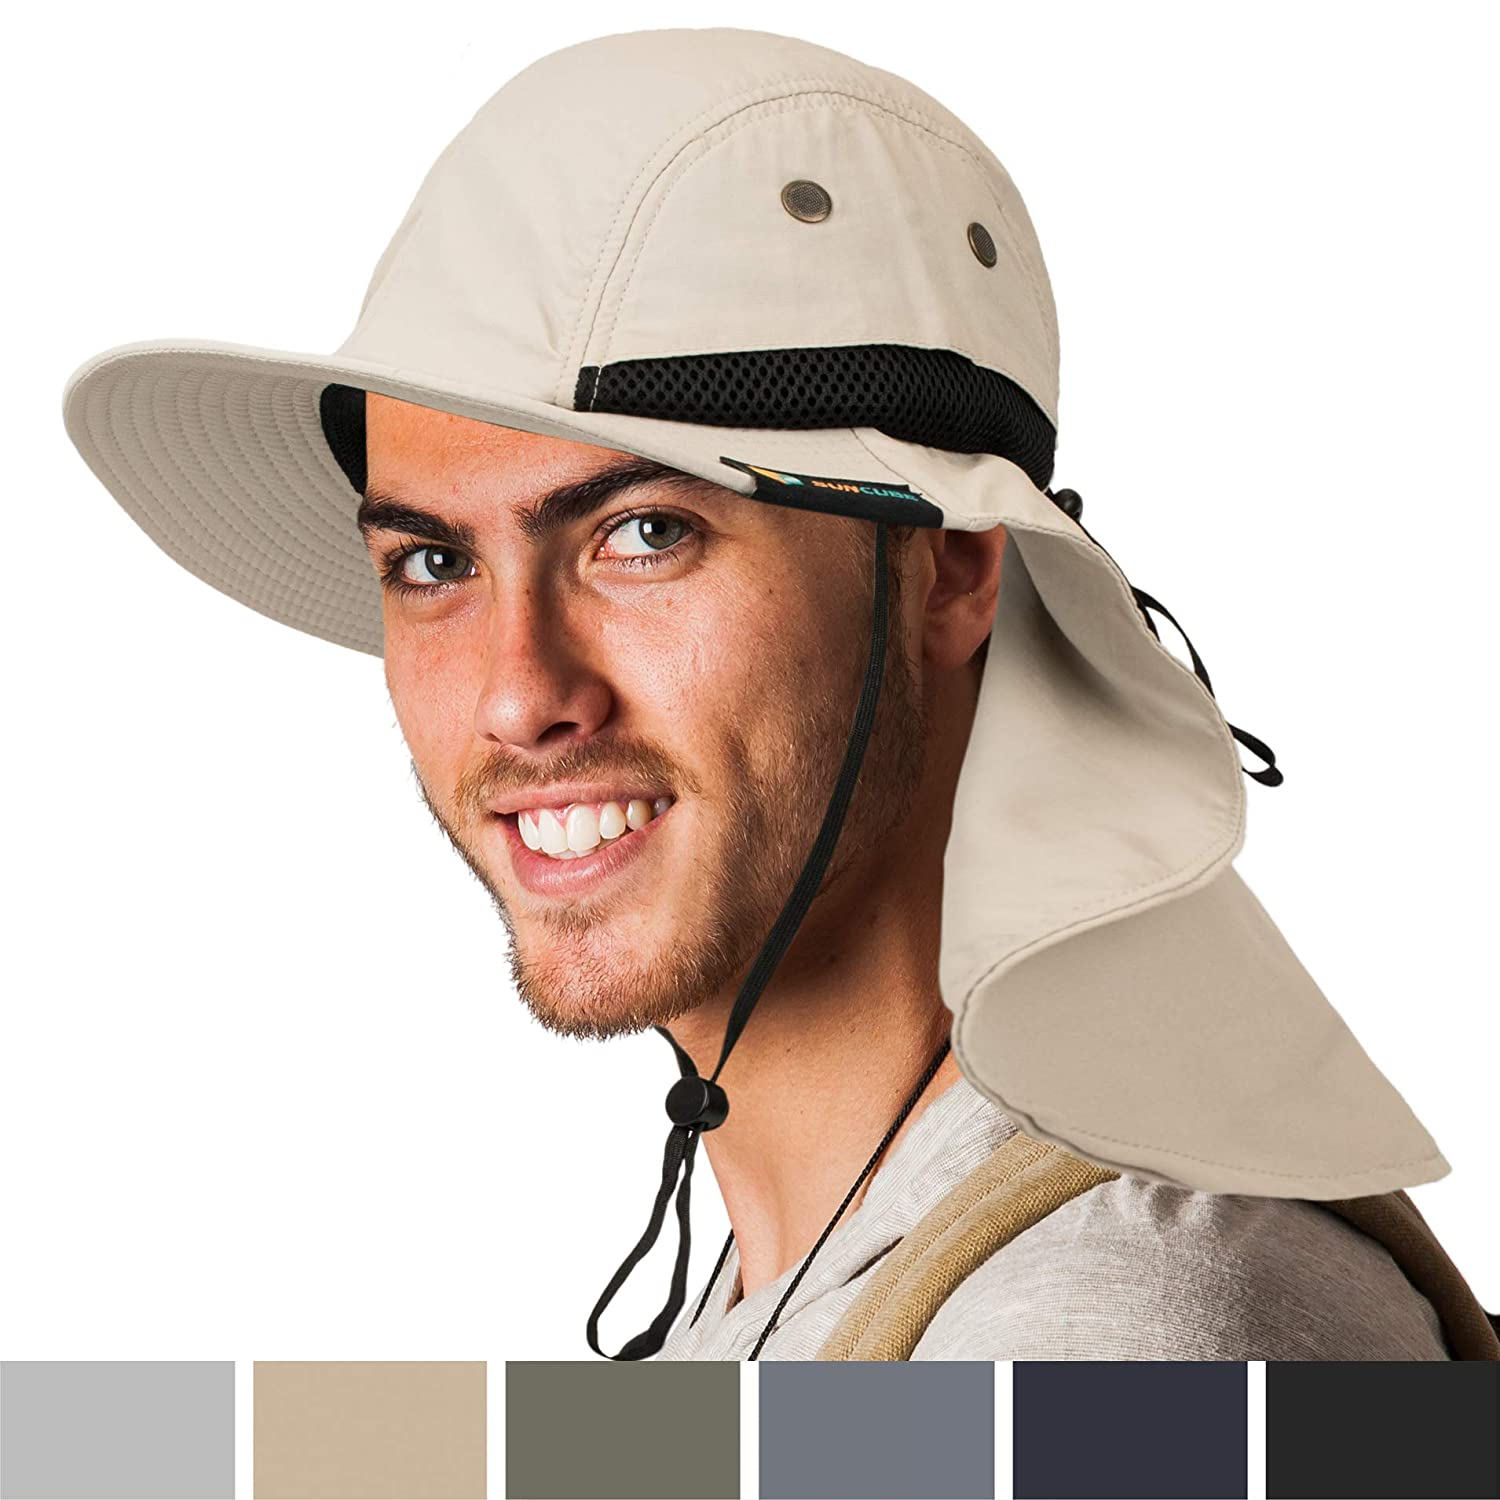 SUN CUBE Outdoor Sun Hat with Neck Cover Packable Wide Brim Hat with UV Protection Work Hat with Sun Protection for Fishing, Gardening, Hiking, Safari Sun Hat for Men, Women